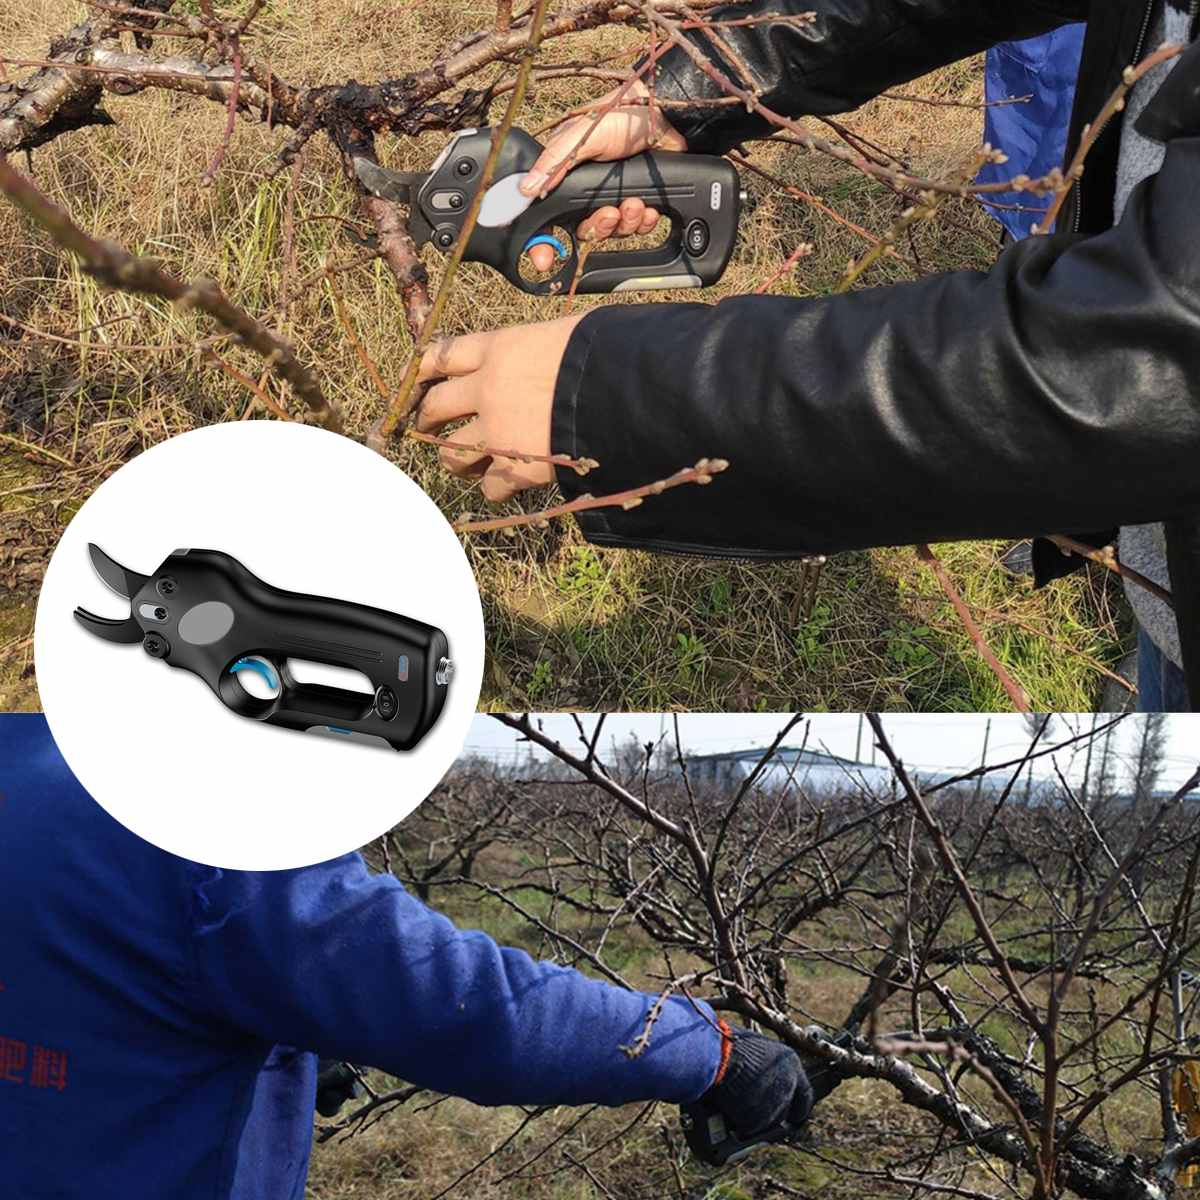 12V Wireless Electric Rechargeable Garden Scissors for Pruning Branches and stems with 4 Li-ion Battery 10